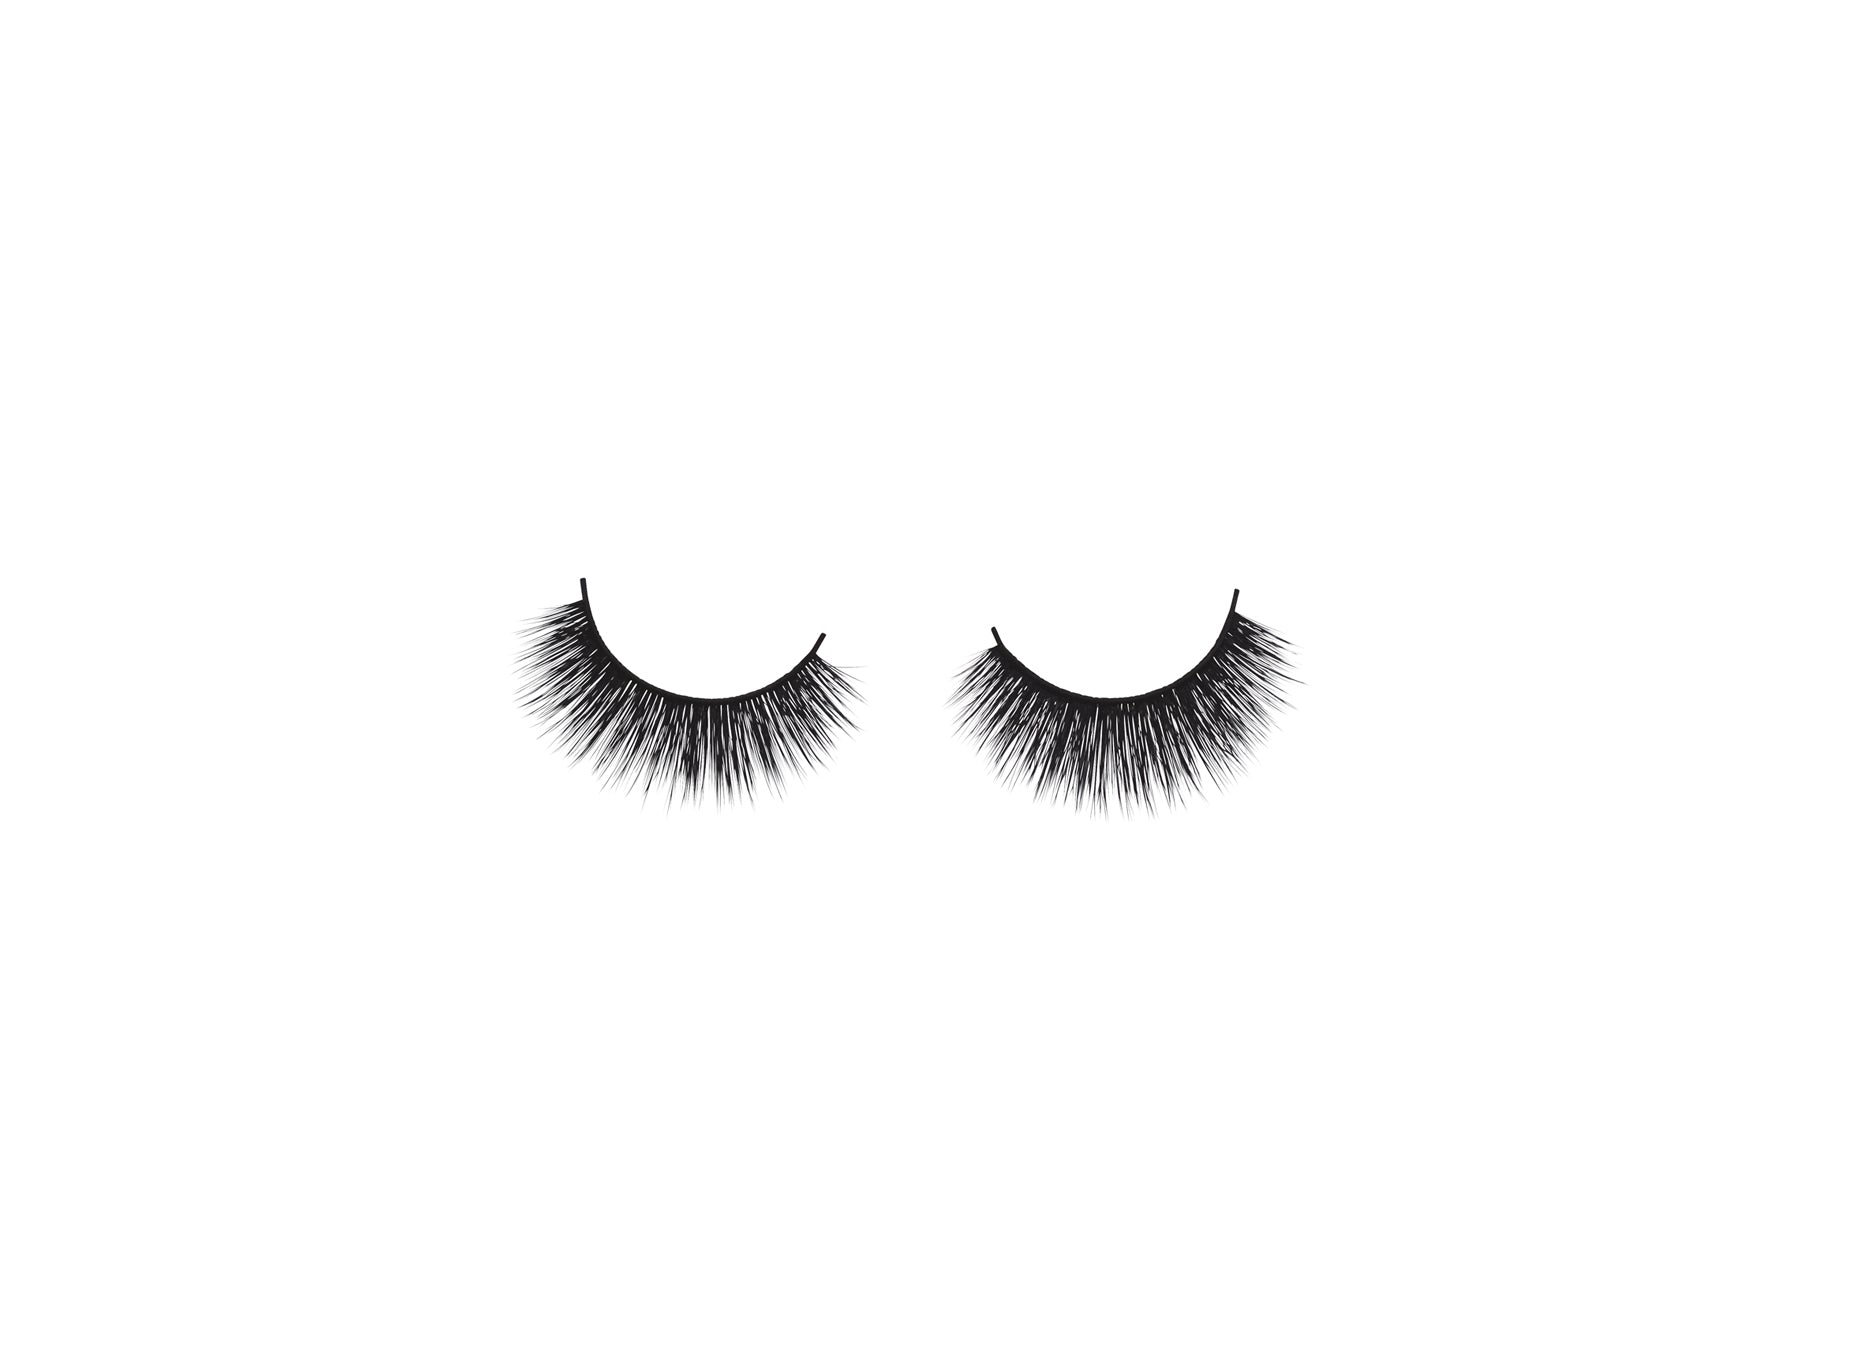 thumbnail - dramatic lashes from lash star beauty